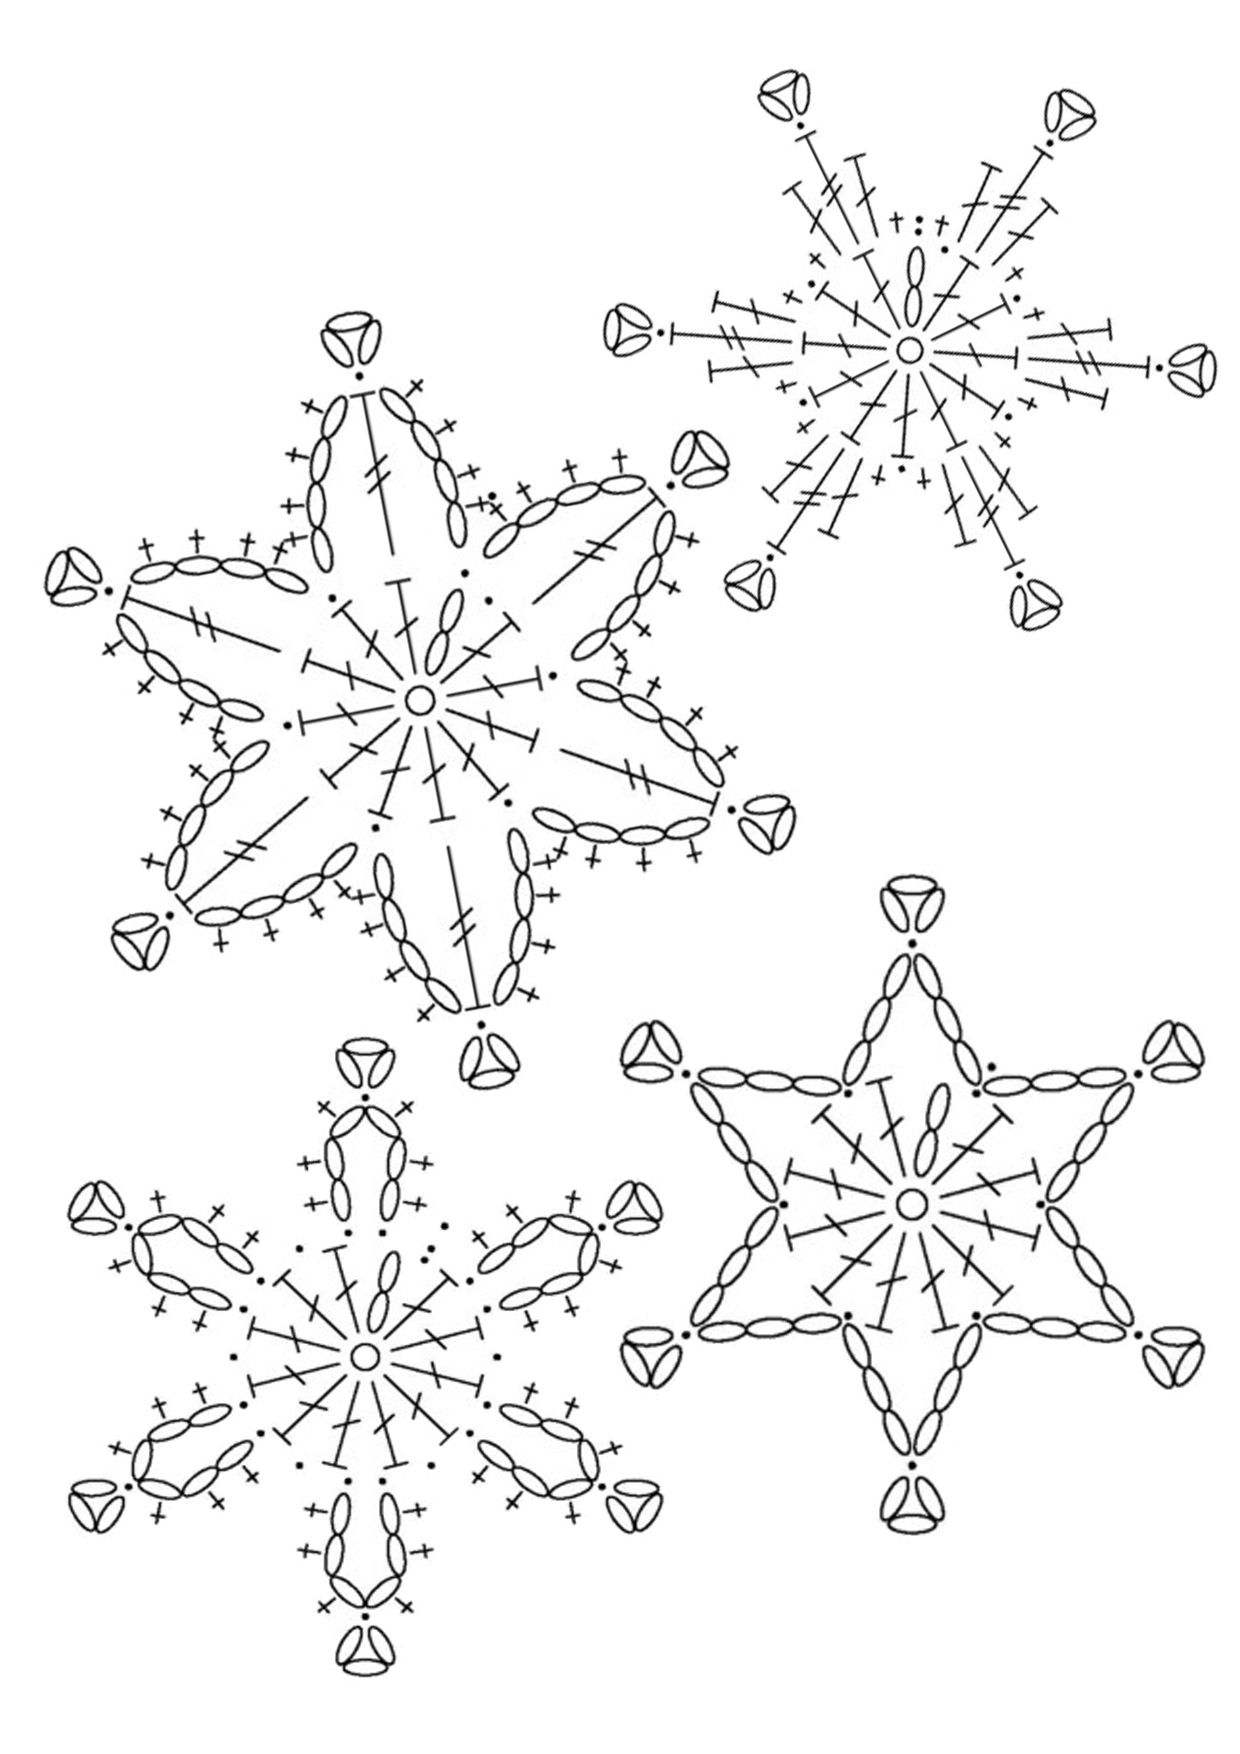 Some snowflakes patterns I liked (not mine) | DIY | Pinterest ...